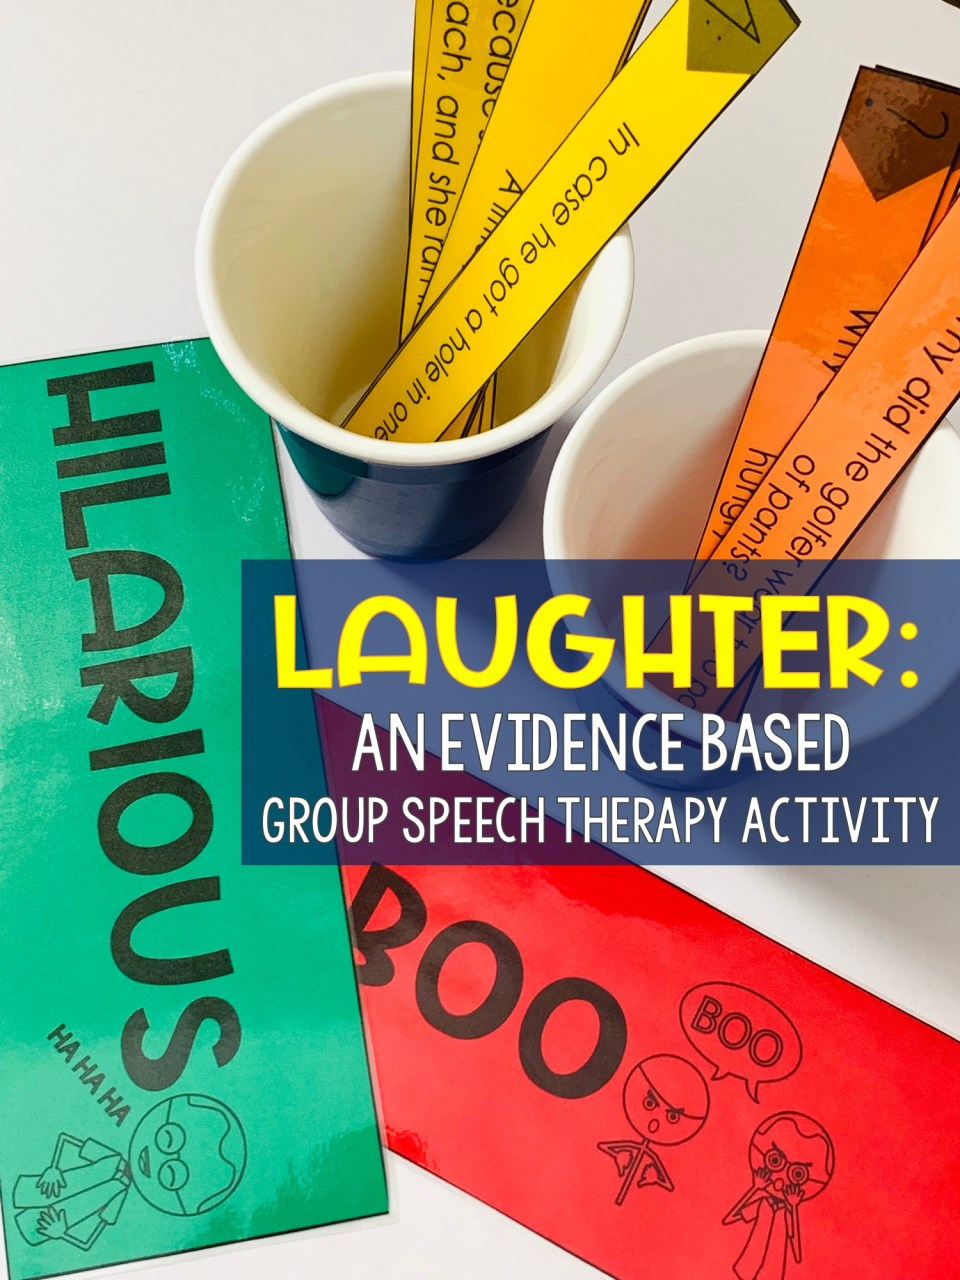 Laughter is an evidenced based group speech therapy activity